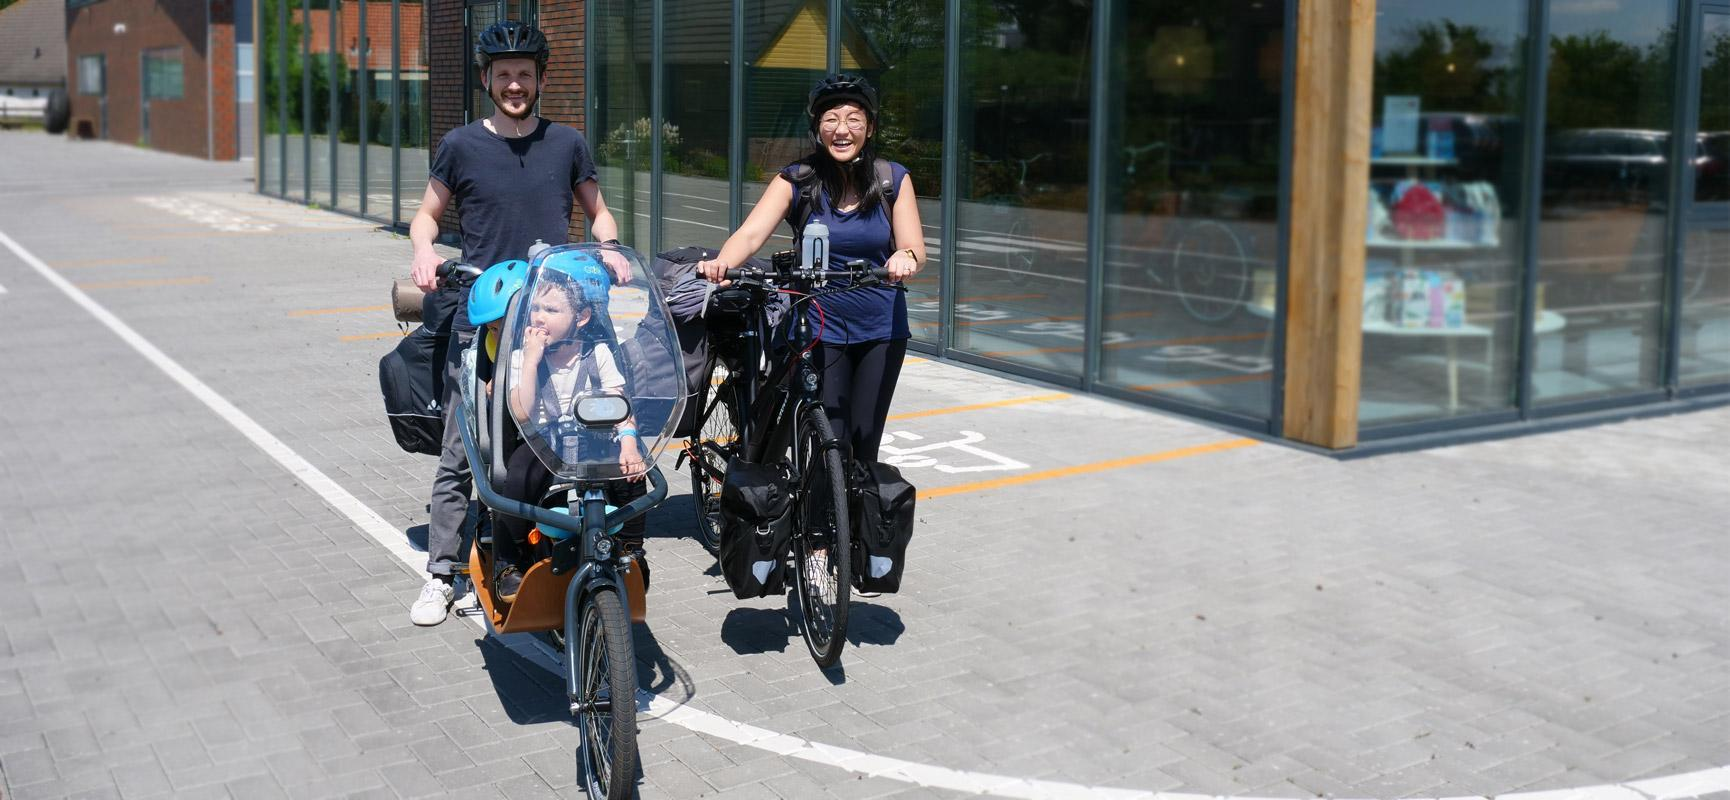 Need inspiration for your holiday? Go on a cargo bike holiday!